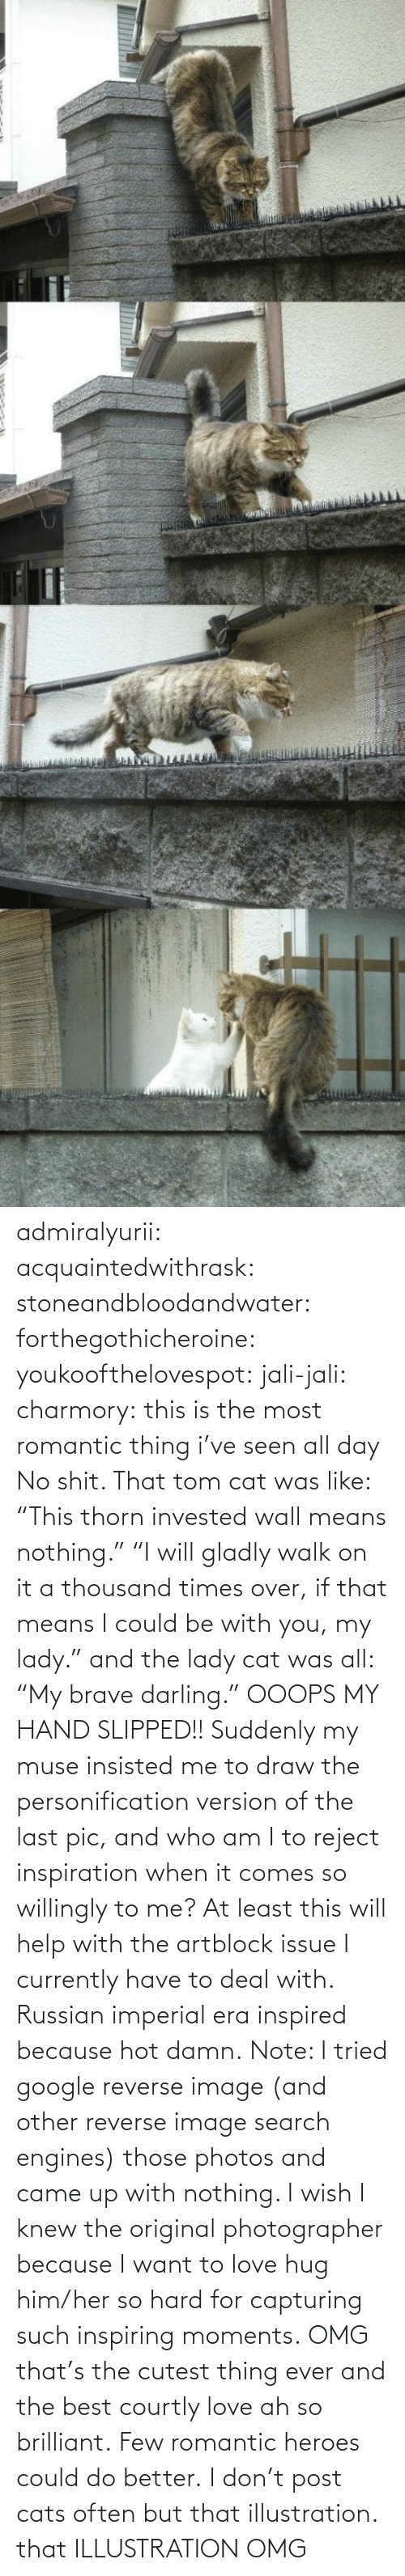 "the best: admiralyurii: acquaintedwithrask:  stoneandbloodandwater:  forthegothicheroine:  youkoofthelovespot:  jali-jali:  charmory:  this is the most romantic thing i've seen all day  No shit. That tom cat was like: ""This thorn invested wall means nothing."" ""I will gladly walk on it a thousand times over, if that means I could be with you, my lady."" and the lady cat was all: ""My brave darling."" OOOPS MY HAND SLIPPED!!  Suddenly my muse insisted me to draw the personification version of the last pic, and who am I to reject inspiration when it comes so willingly to me? At least this will help with the artblock issue I currently have to deal with. Russian imperial era inspired because hot damn. Note: I tried google reverse image (and other reverse image search engines) those photos and came up with nothing. I wish I knew the original photographer because I want to love hug him/her so hard for capturing such inspiring moments.  OMG that's the cutest thing ever and the best courtly love ah so brilliant.  Few romantic heroes could do better.  I don't post cats often but that illustration.  that ILLUSTRATION    OMG"